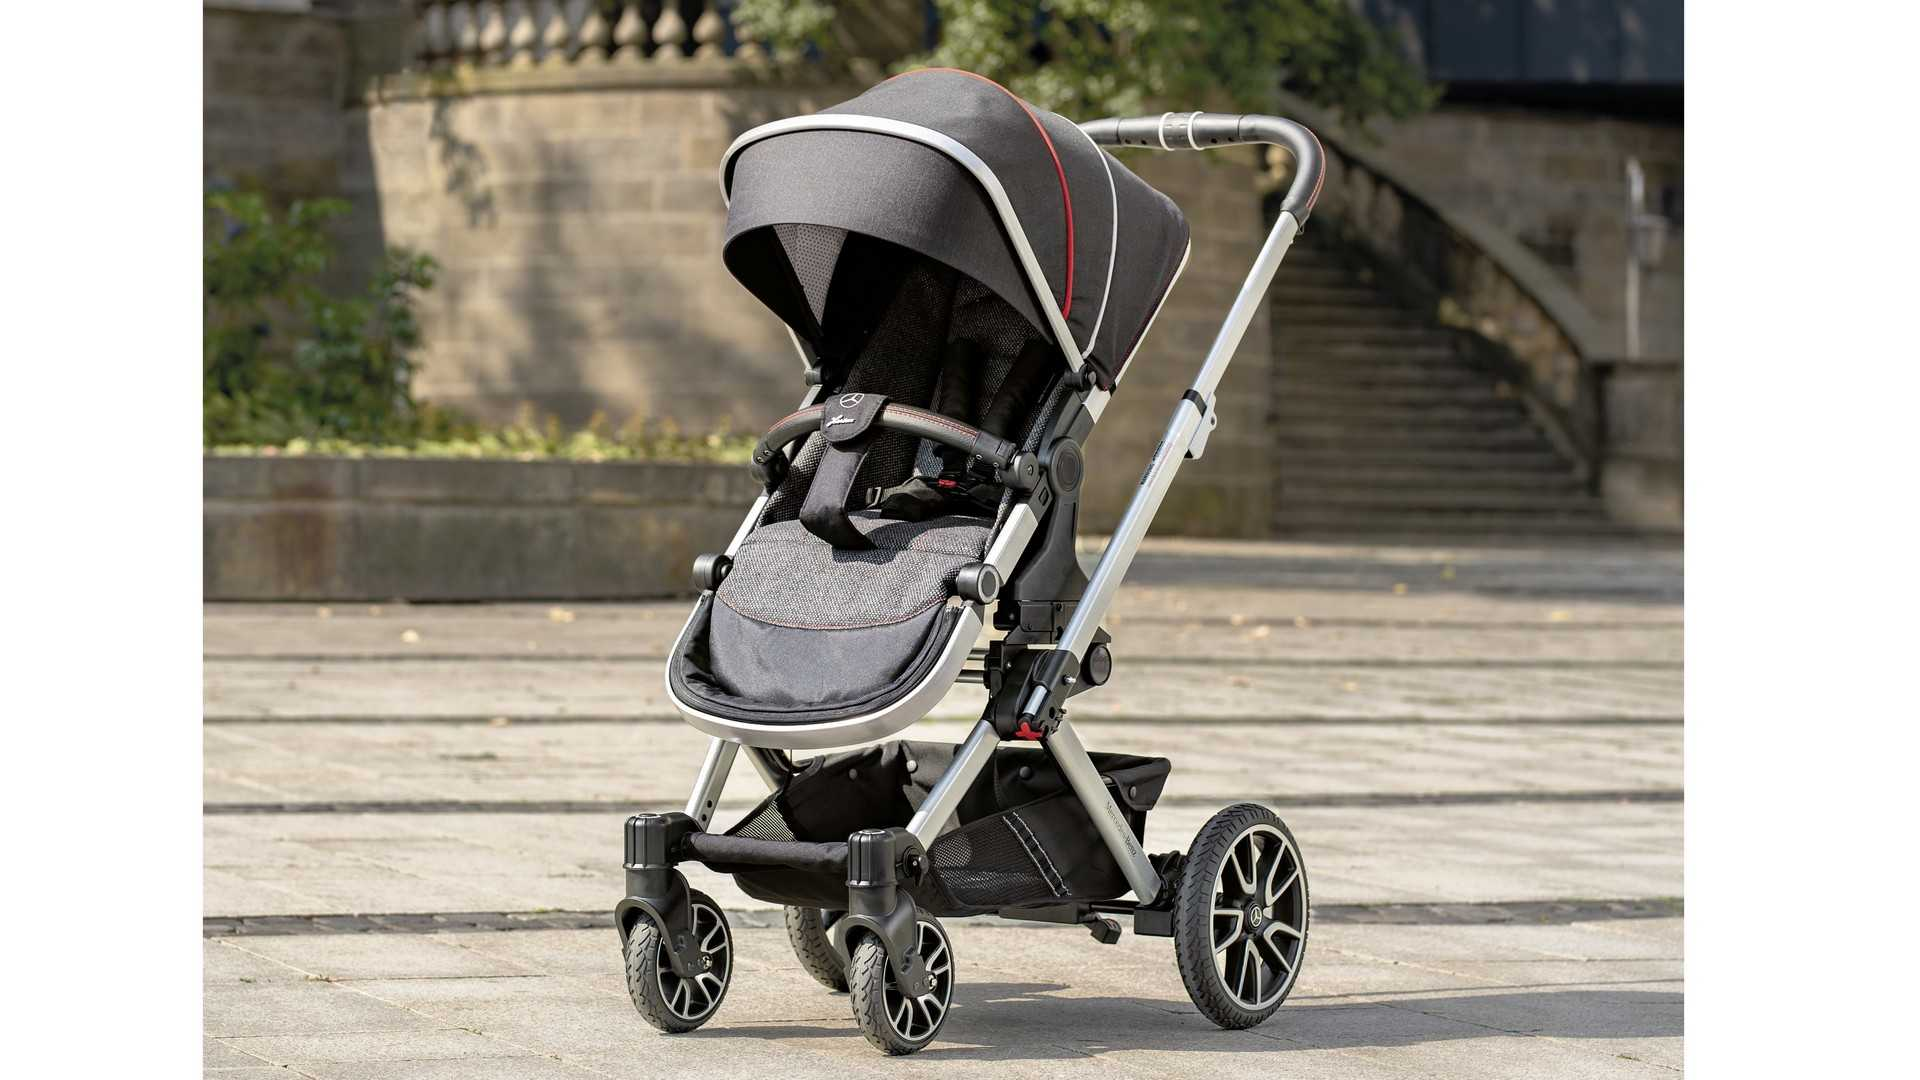 Hartan Baby One Mercedes Now Has A Baby Stroller And Believe It Or Not It